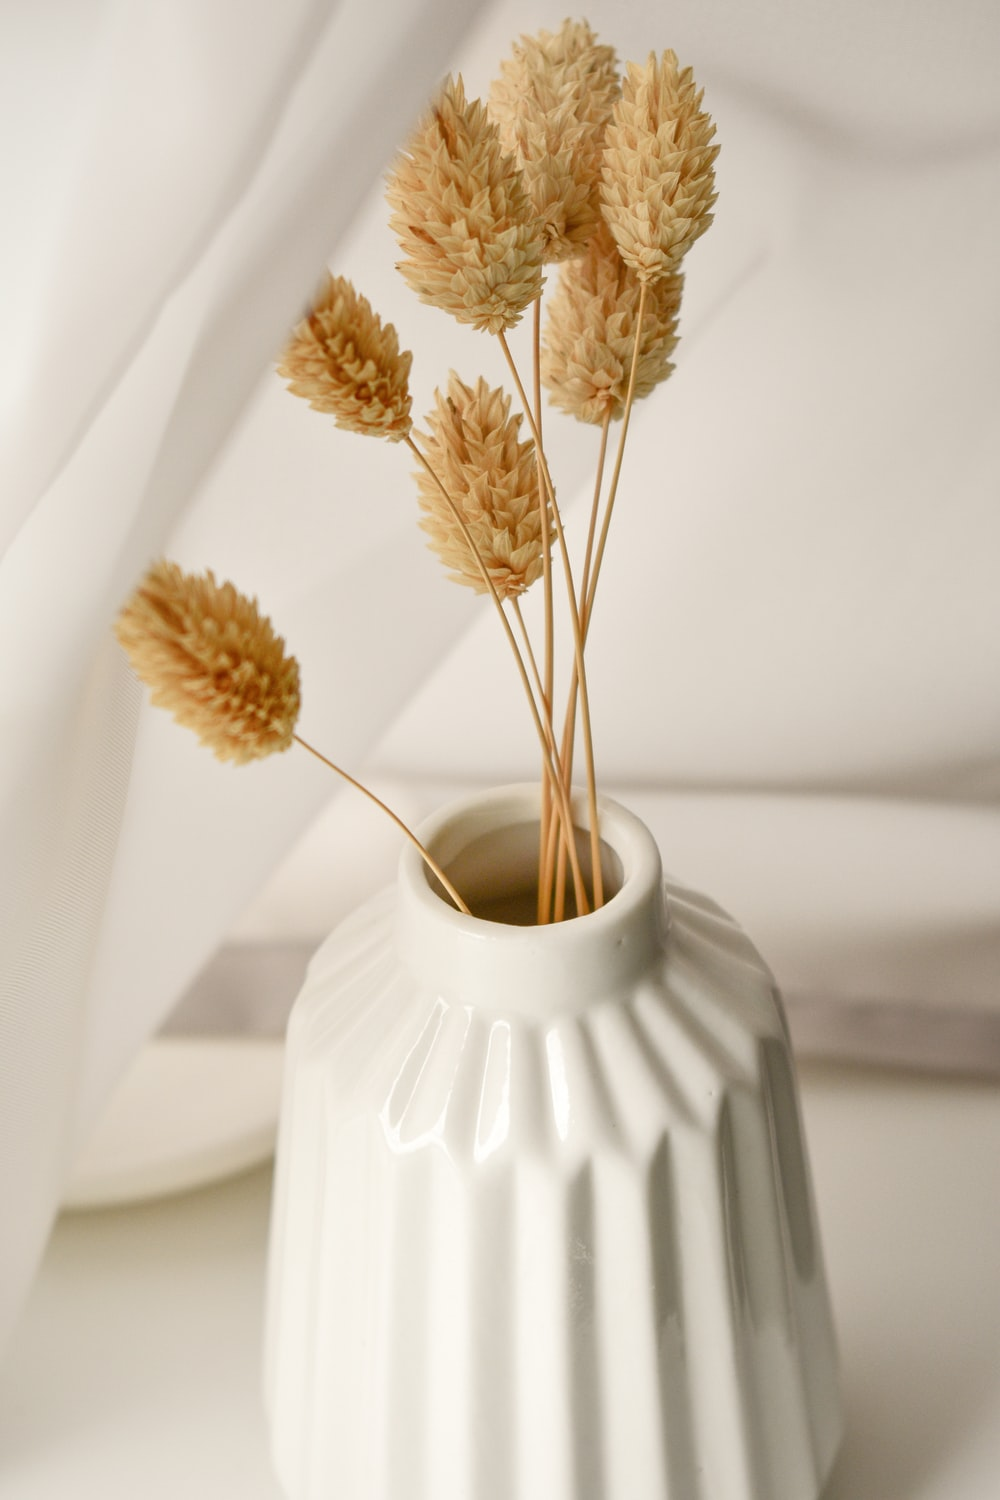 brown and white flower in white ceramic vase